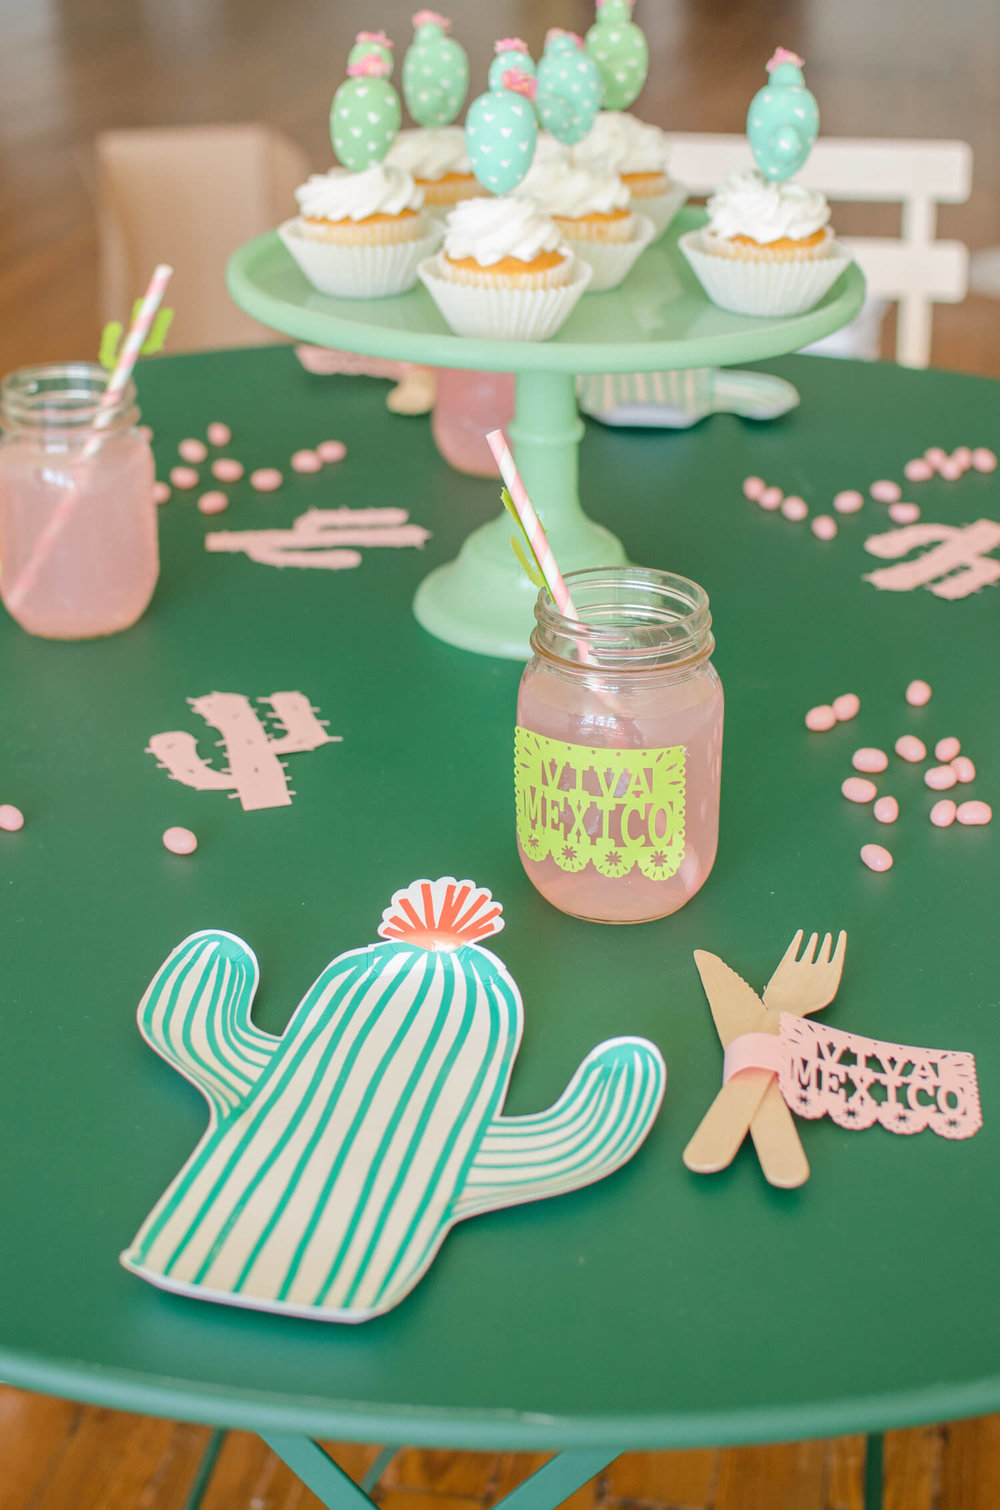 Cinco de Mayo tablescape / Cactus plates / Southwestern party ideas / Cinco de Mayo party ideas / Viva Mexico / Cinco de Mayo desserts / Cactus cupcakes / Cactus DIY cupcake toppers / Southwestern tablescape / Styled by Carolina from MINT Event Design / www.minteventdesign.com